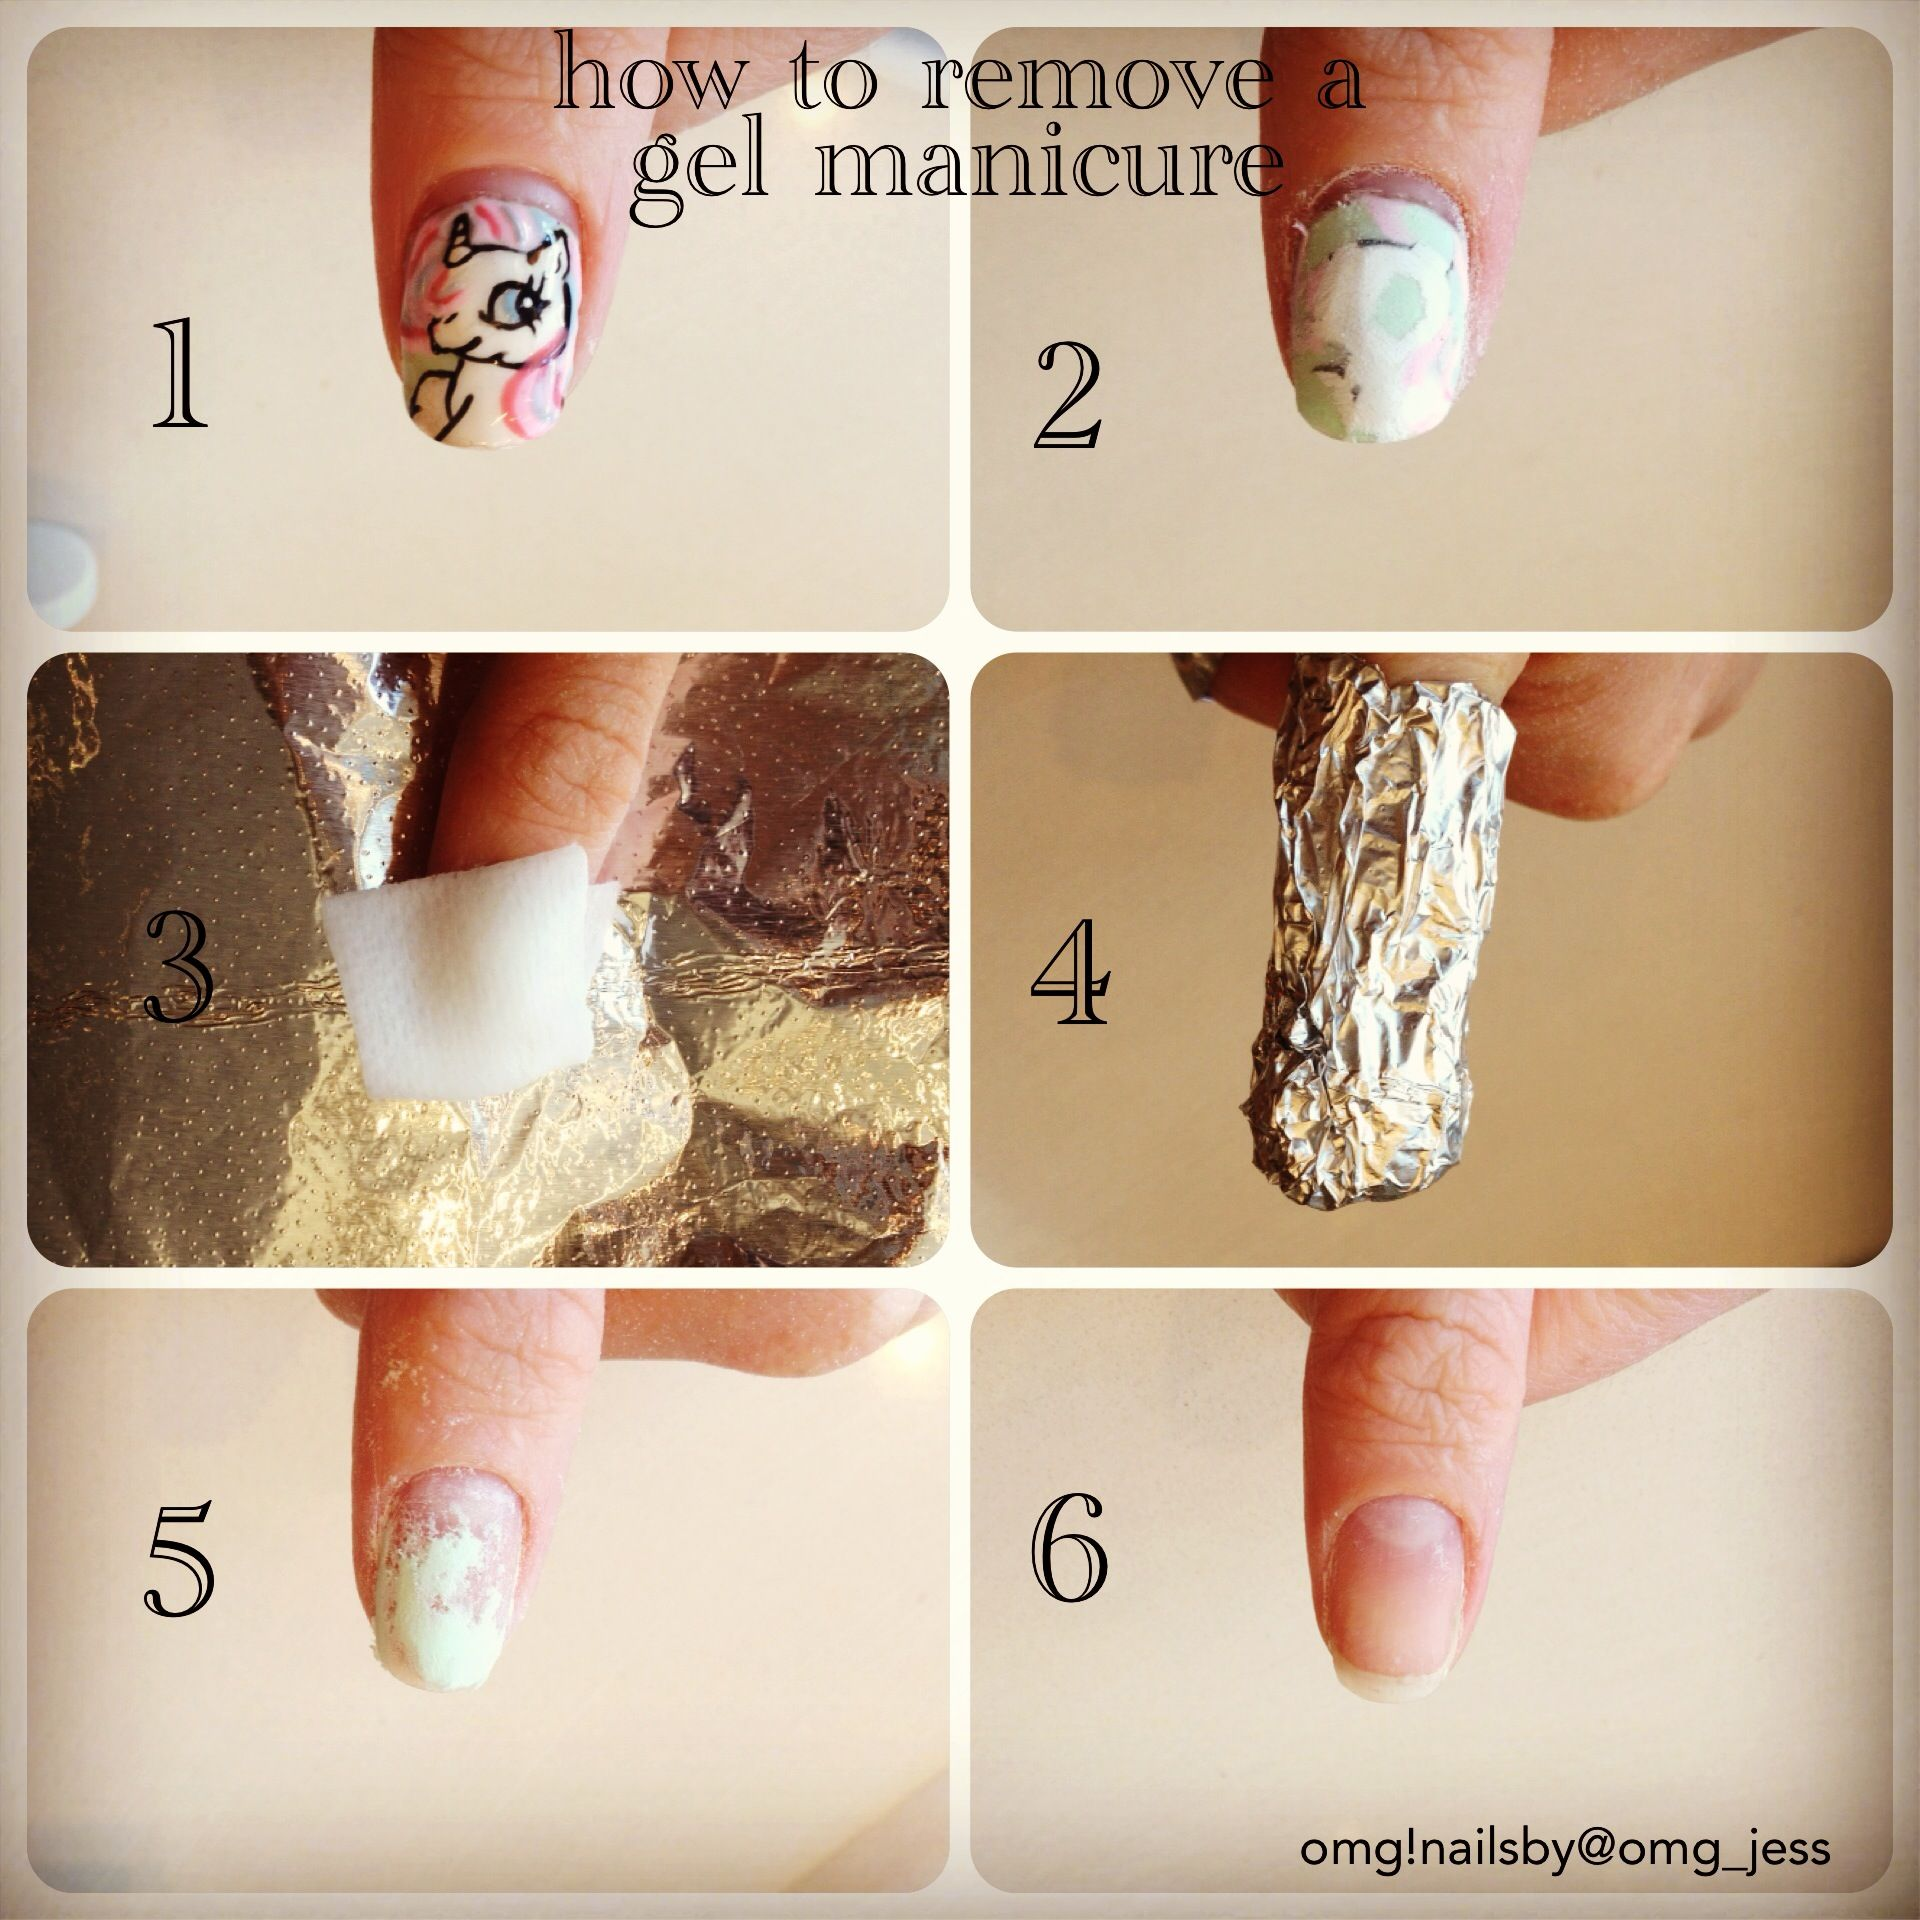 How to remove gels correctly!